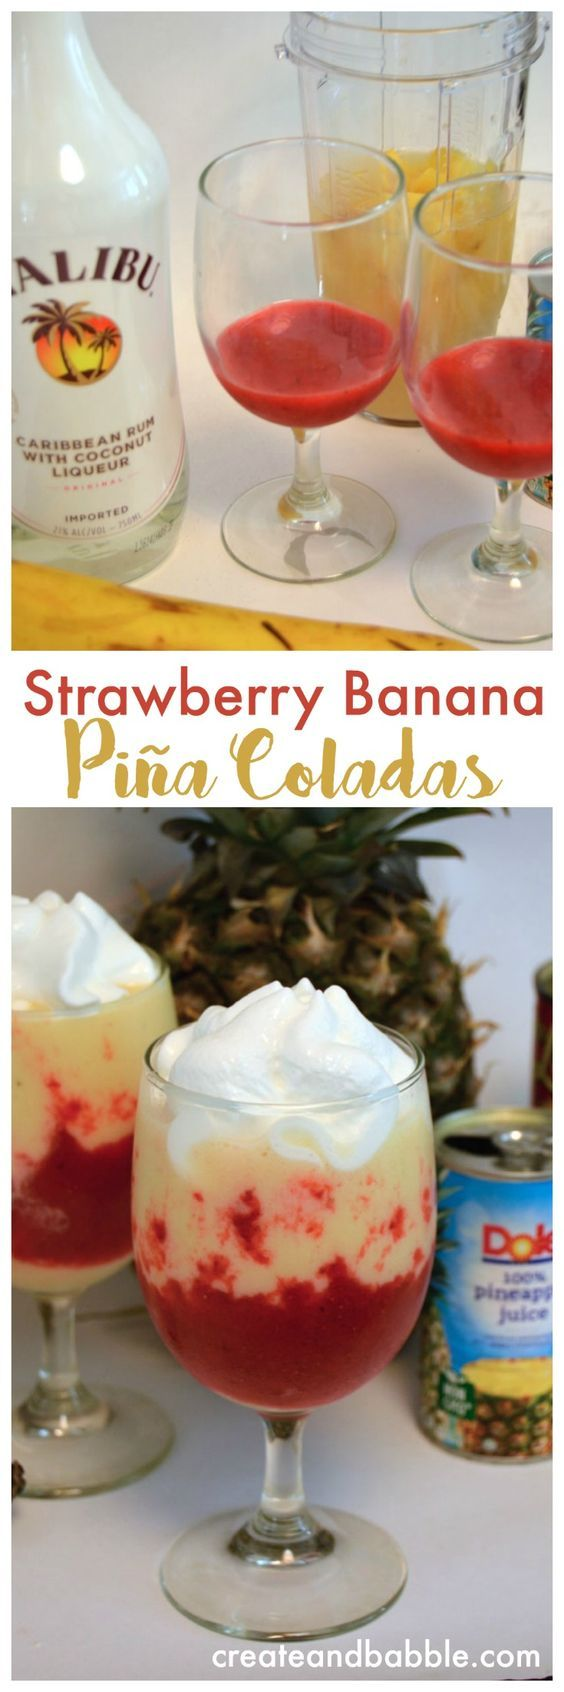 Strawberry Banana Piña Colada Recipe